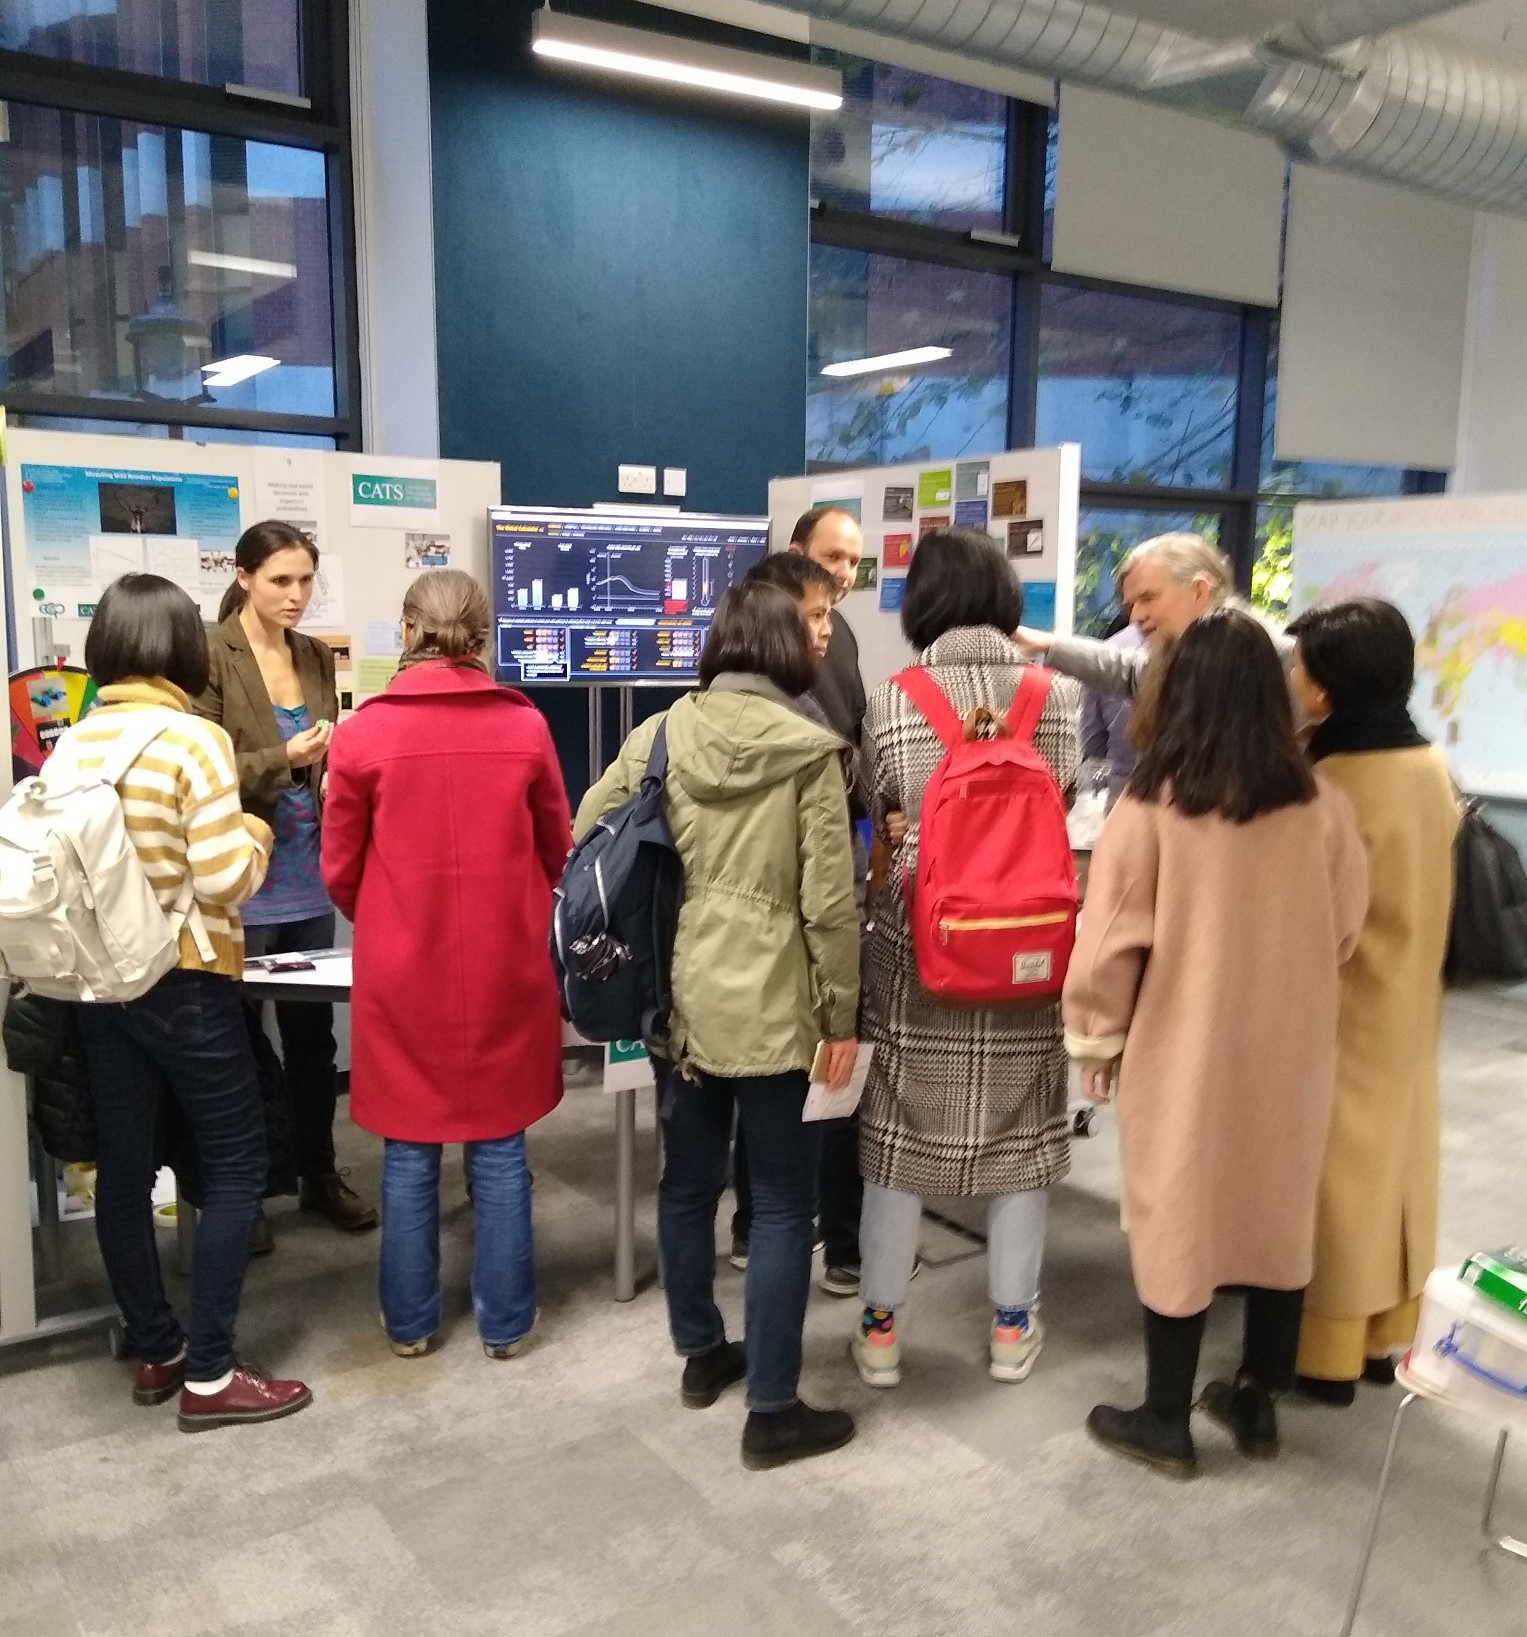 Research Showcase group IMG_20191119_155738452